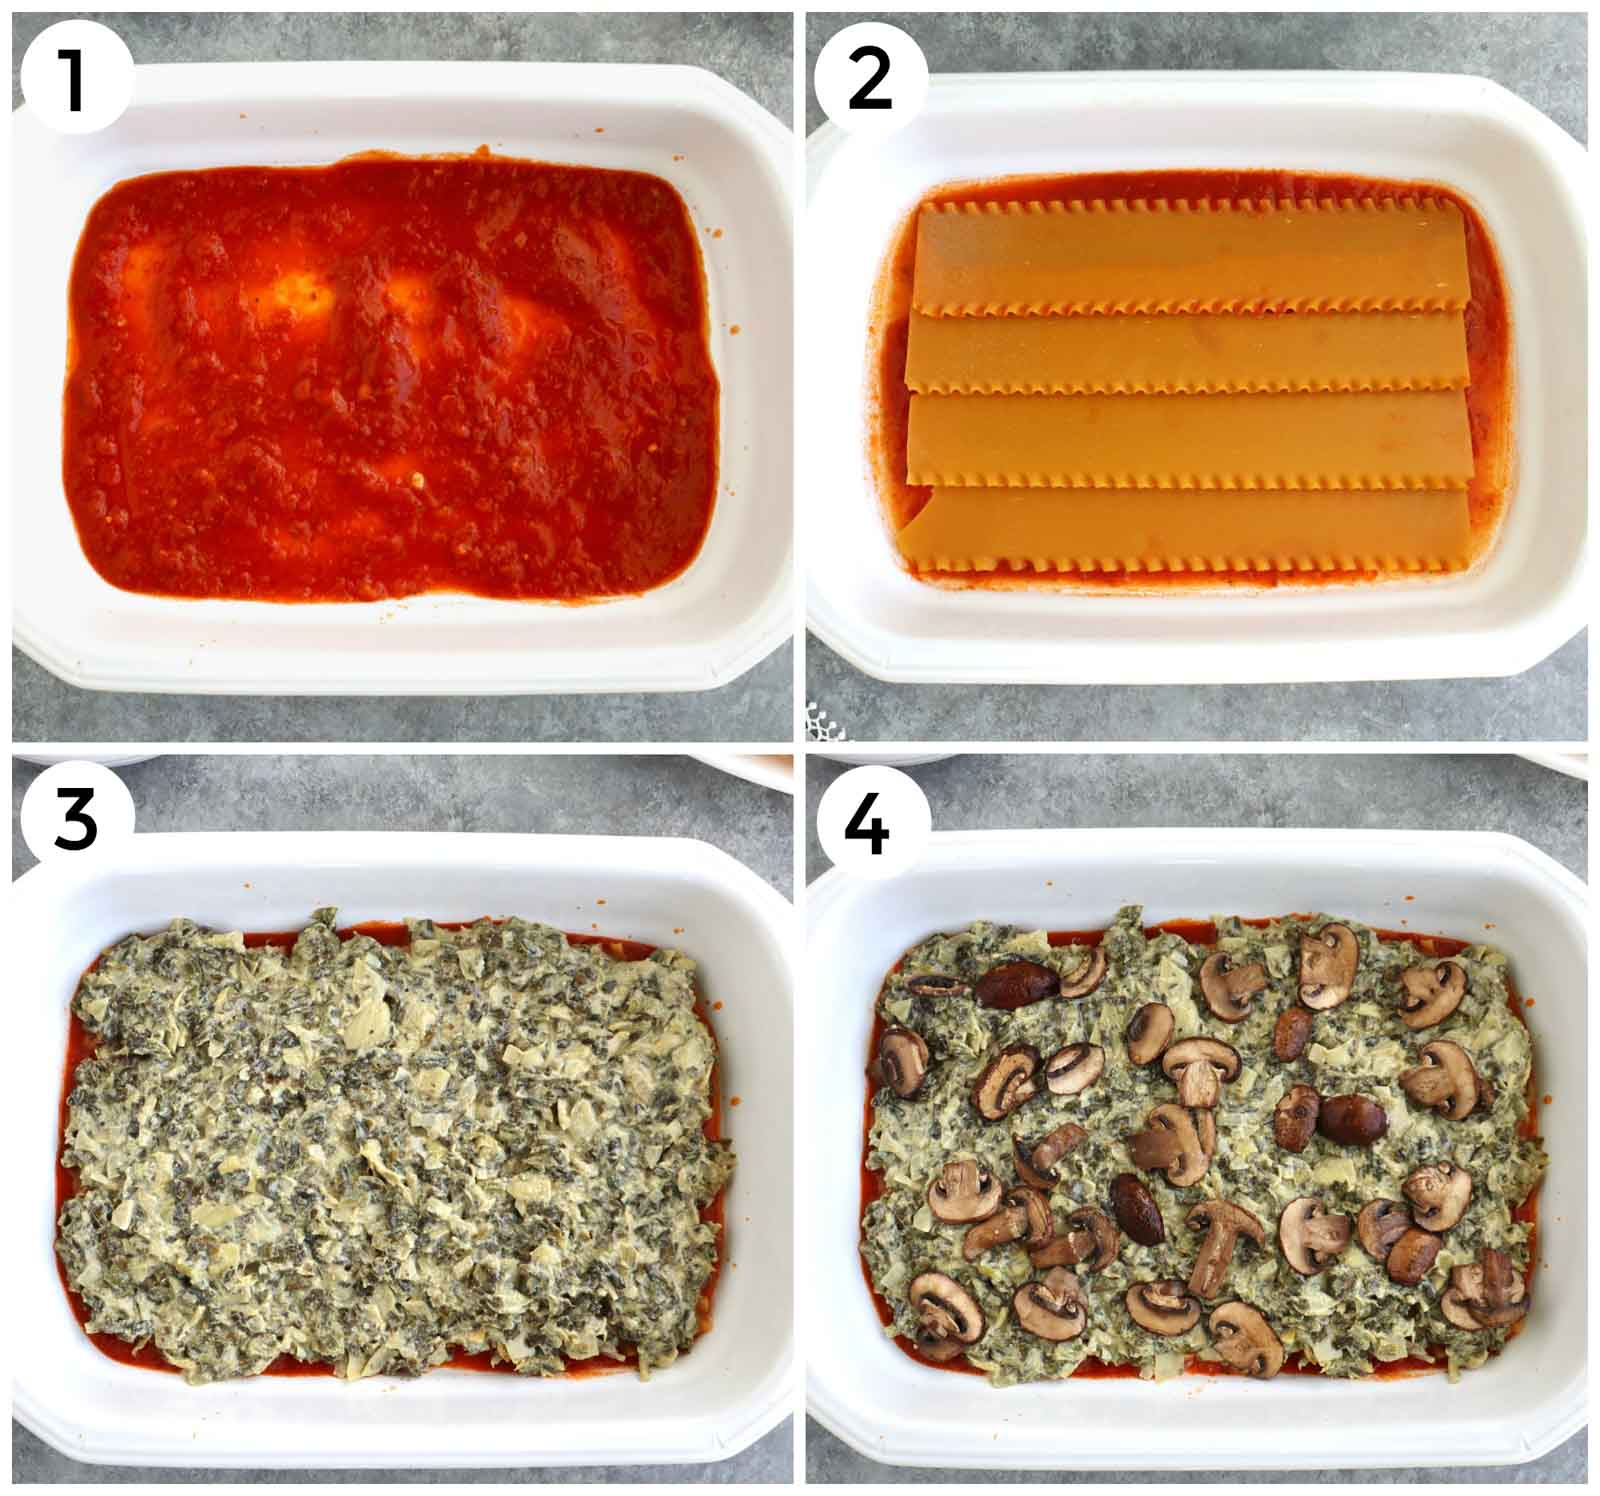 A photo collage showing how to make vegan lasagna step by step.